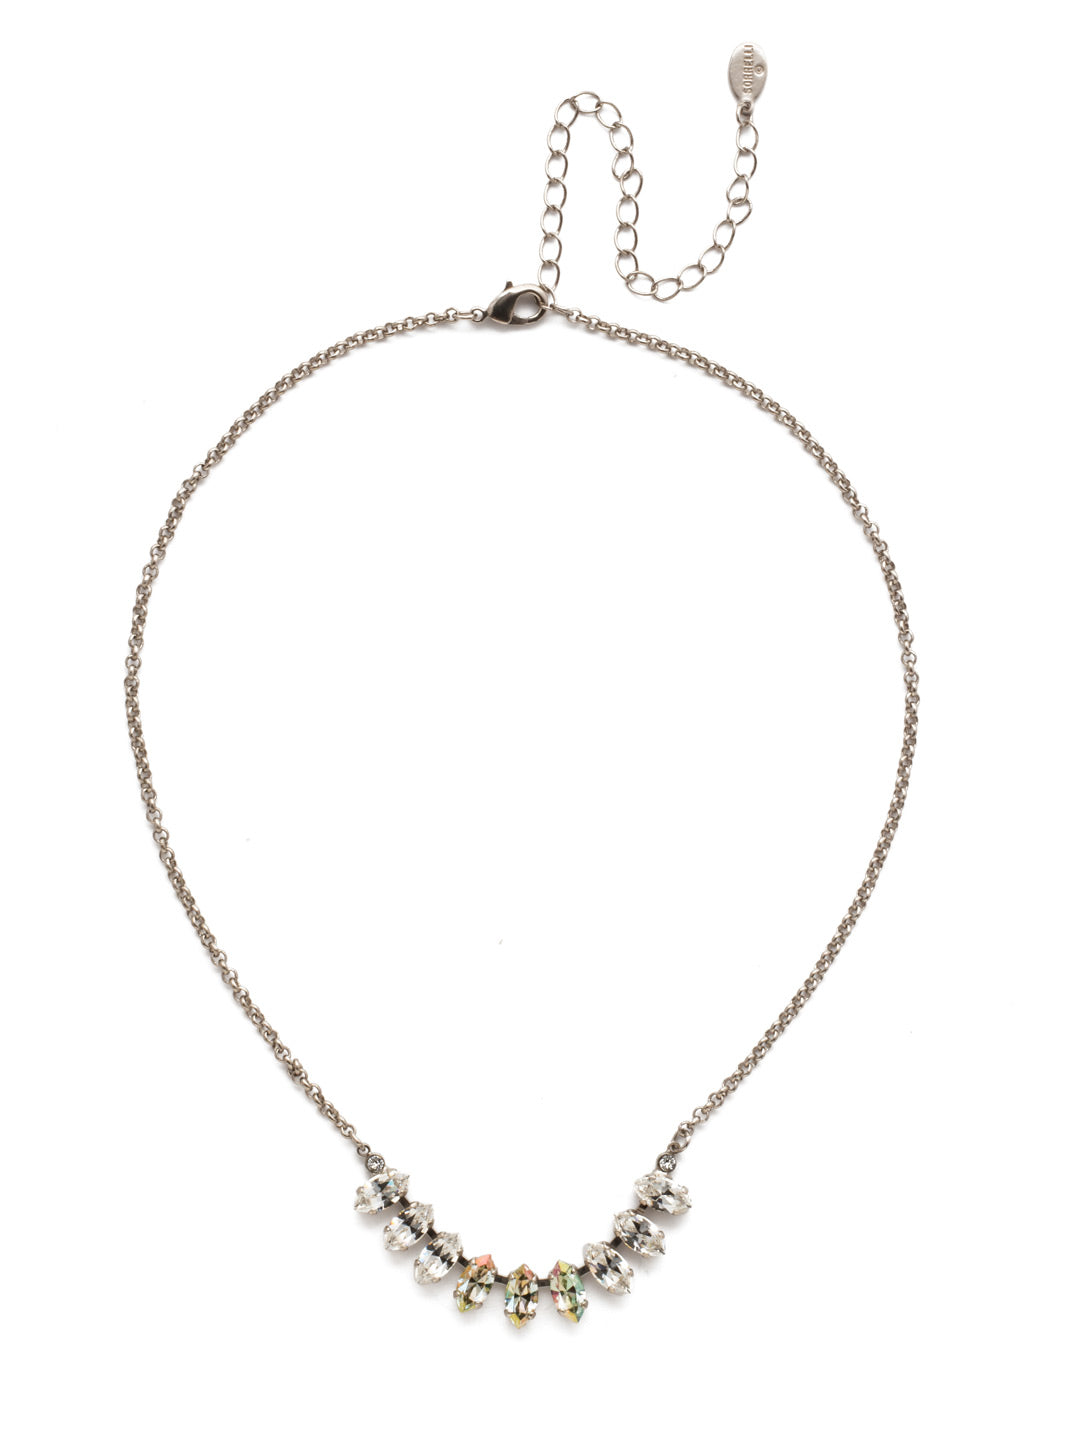 Clarissa Tennis Necklace - NEP4ASCRE